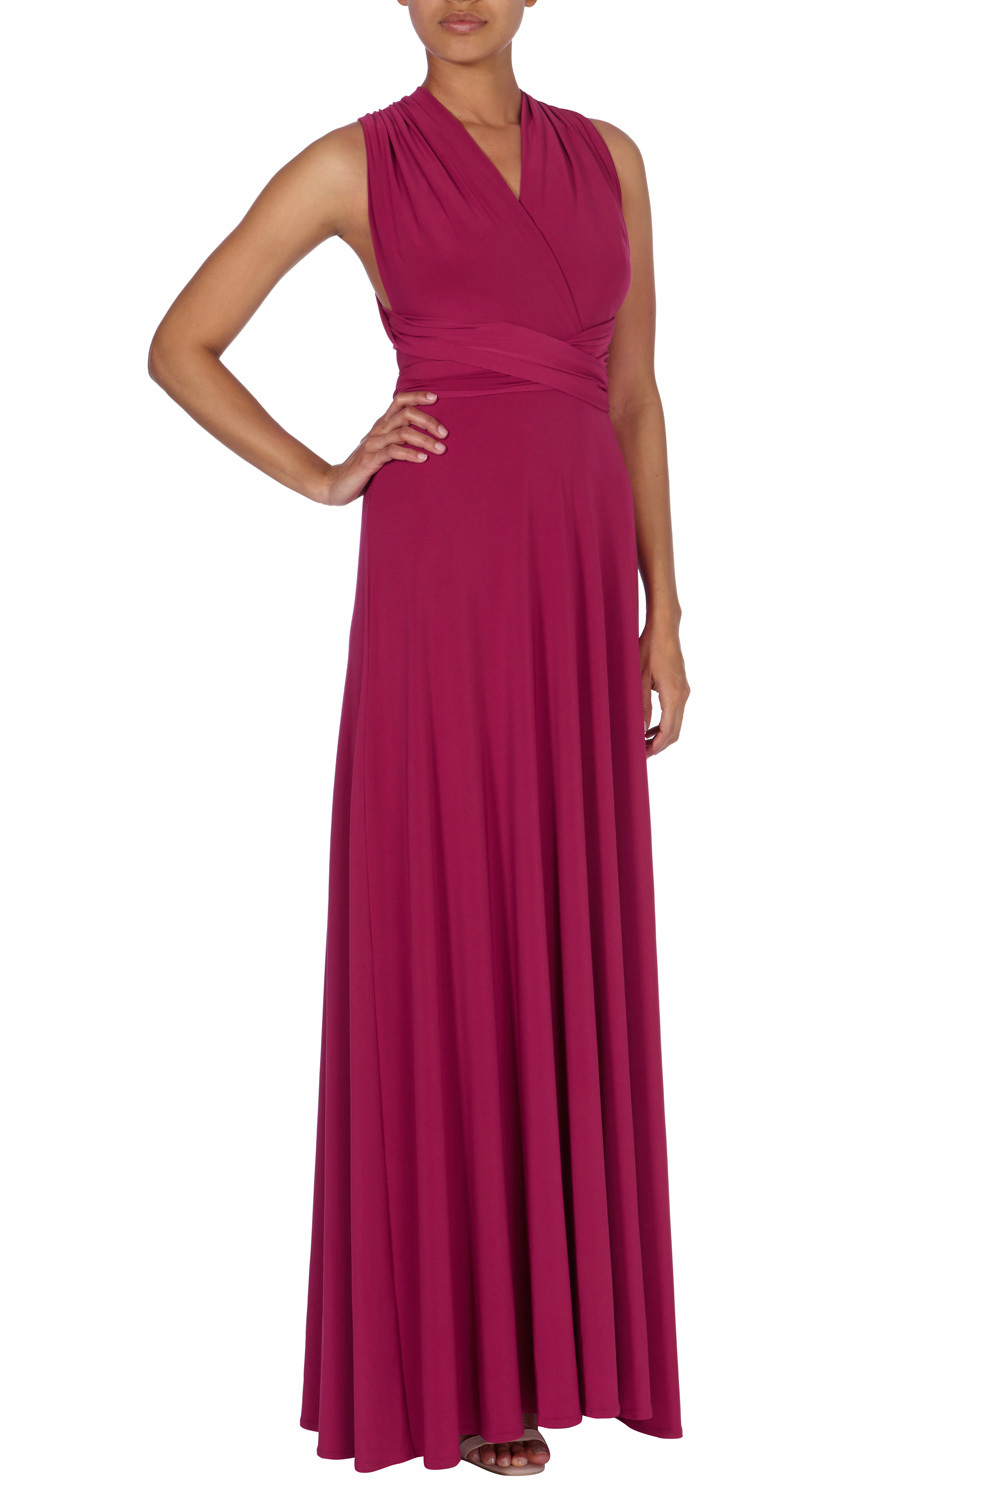 Corwin Multi Tie Dress - neckline: v-neck; pattern: plain; sleeve style: sleeveless; style: maxi dress; length: ankle length; predominant colour: hot pink; occasions: evening; fit: fitted at waist & bust; fibres: polyester/polyamide - stretch; hip detail: soft pleats at hip/draping at hip/flared at hip; sleeve length: sleeveless; pattern type: fabric; texture group: jersey - stretchy/drapey; season: a/w 2015